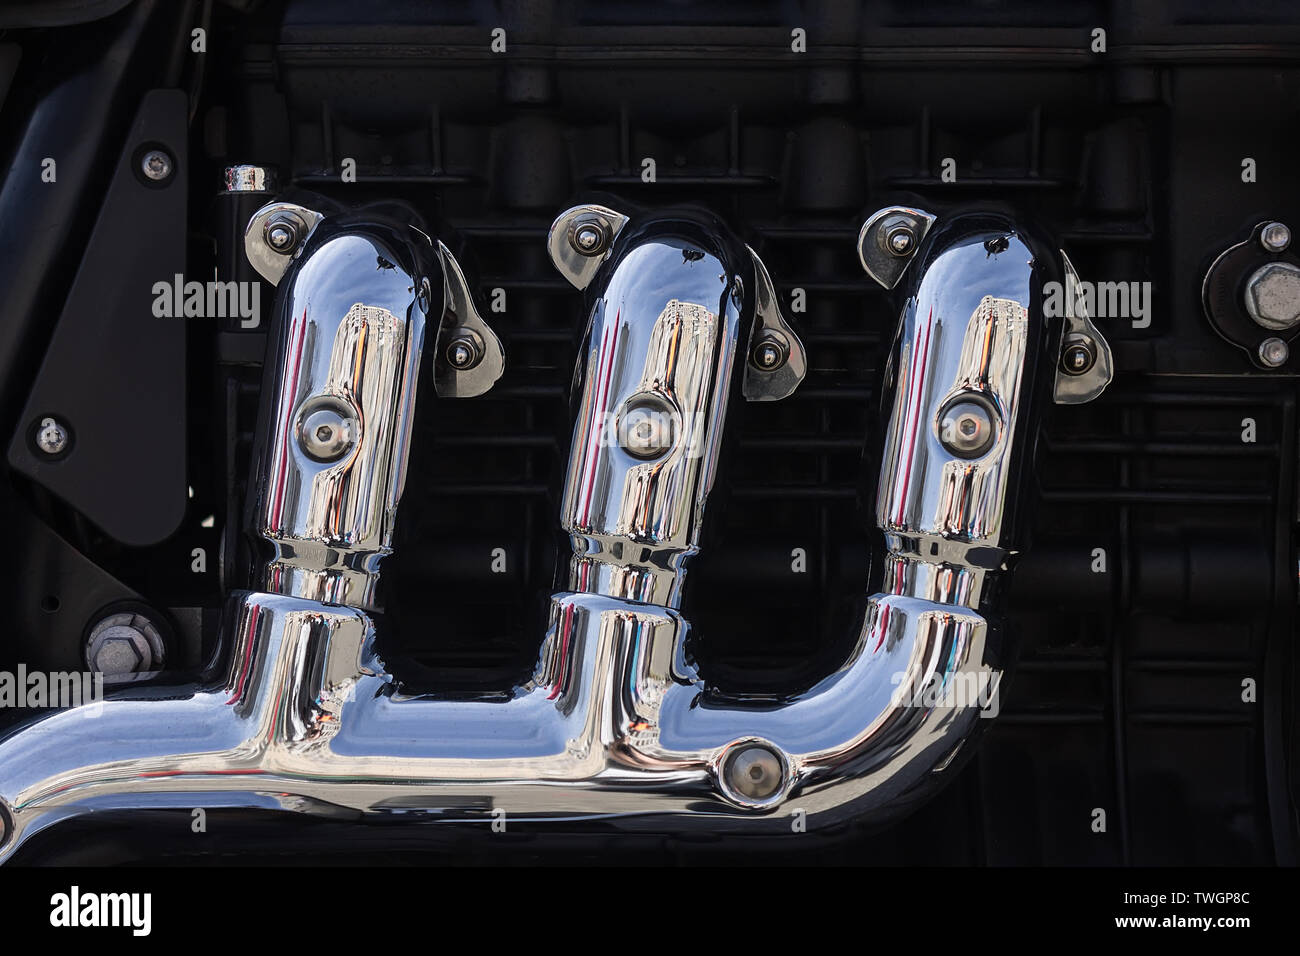 Engine Exhaust Stock Photos & Engine Exhaust Stock Images